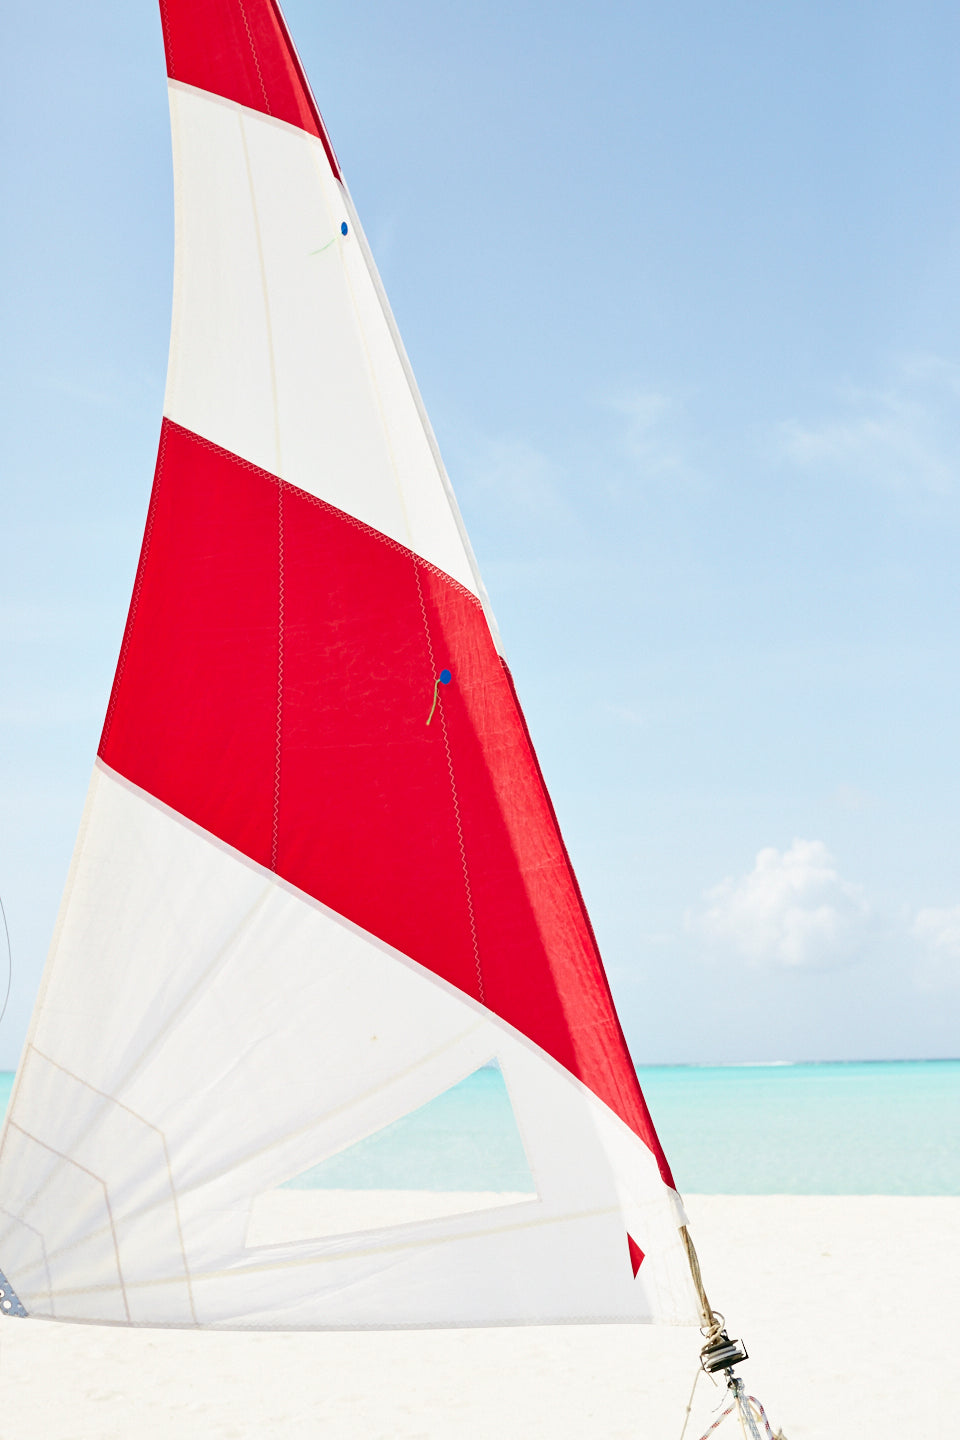 Red Stripe (detail), Cocoa Island, Maldives